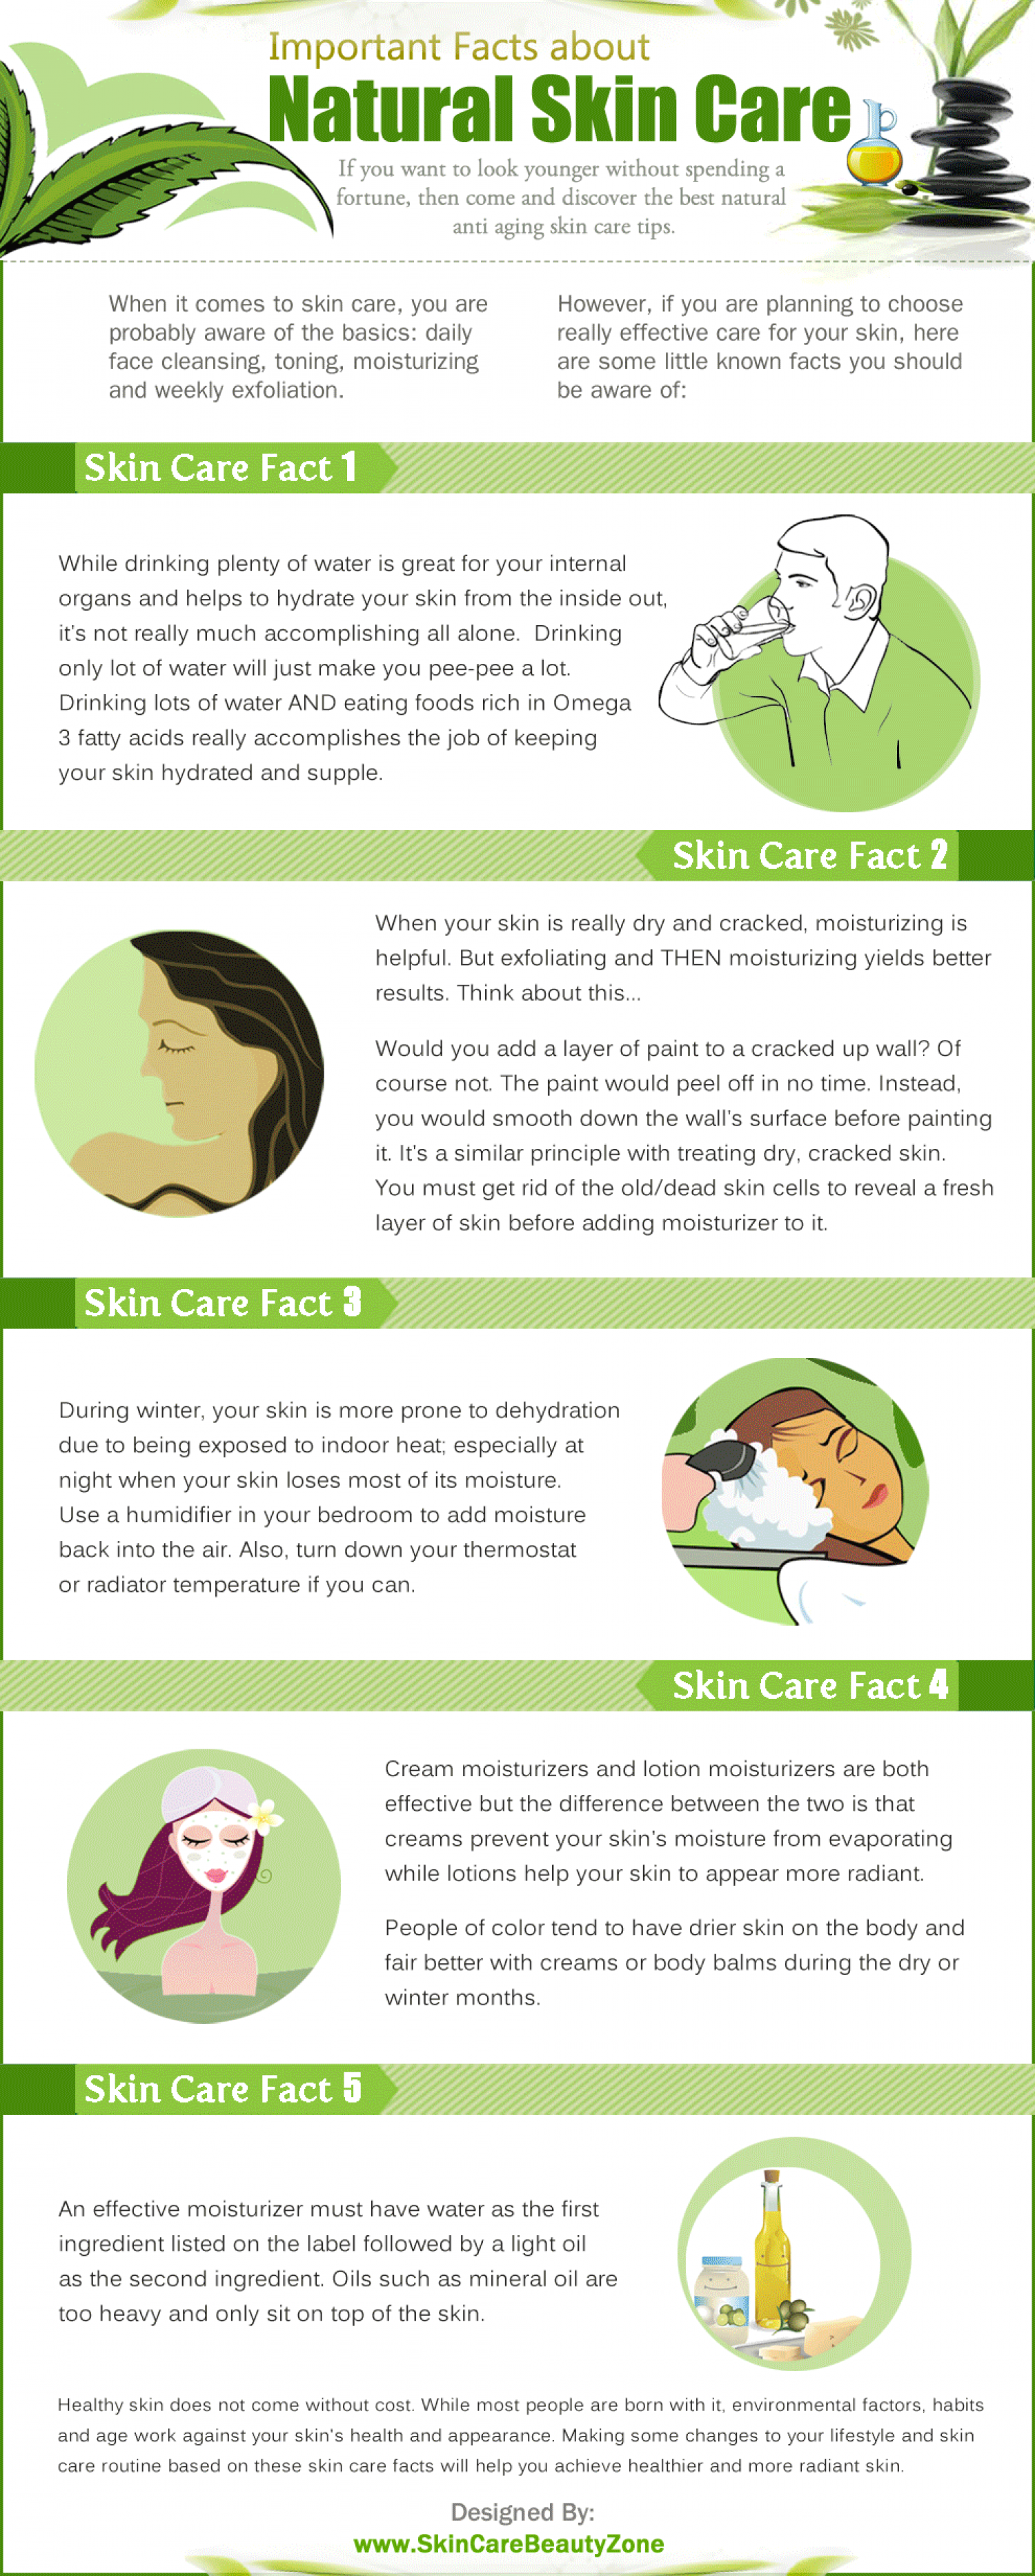 Important Facts About Natural Skin Care Infographic